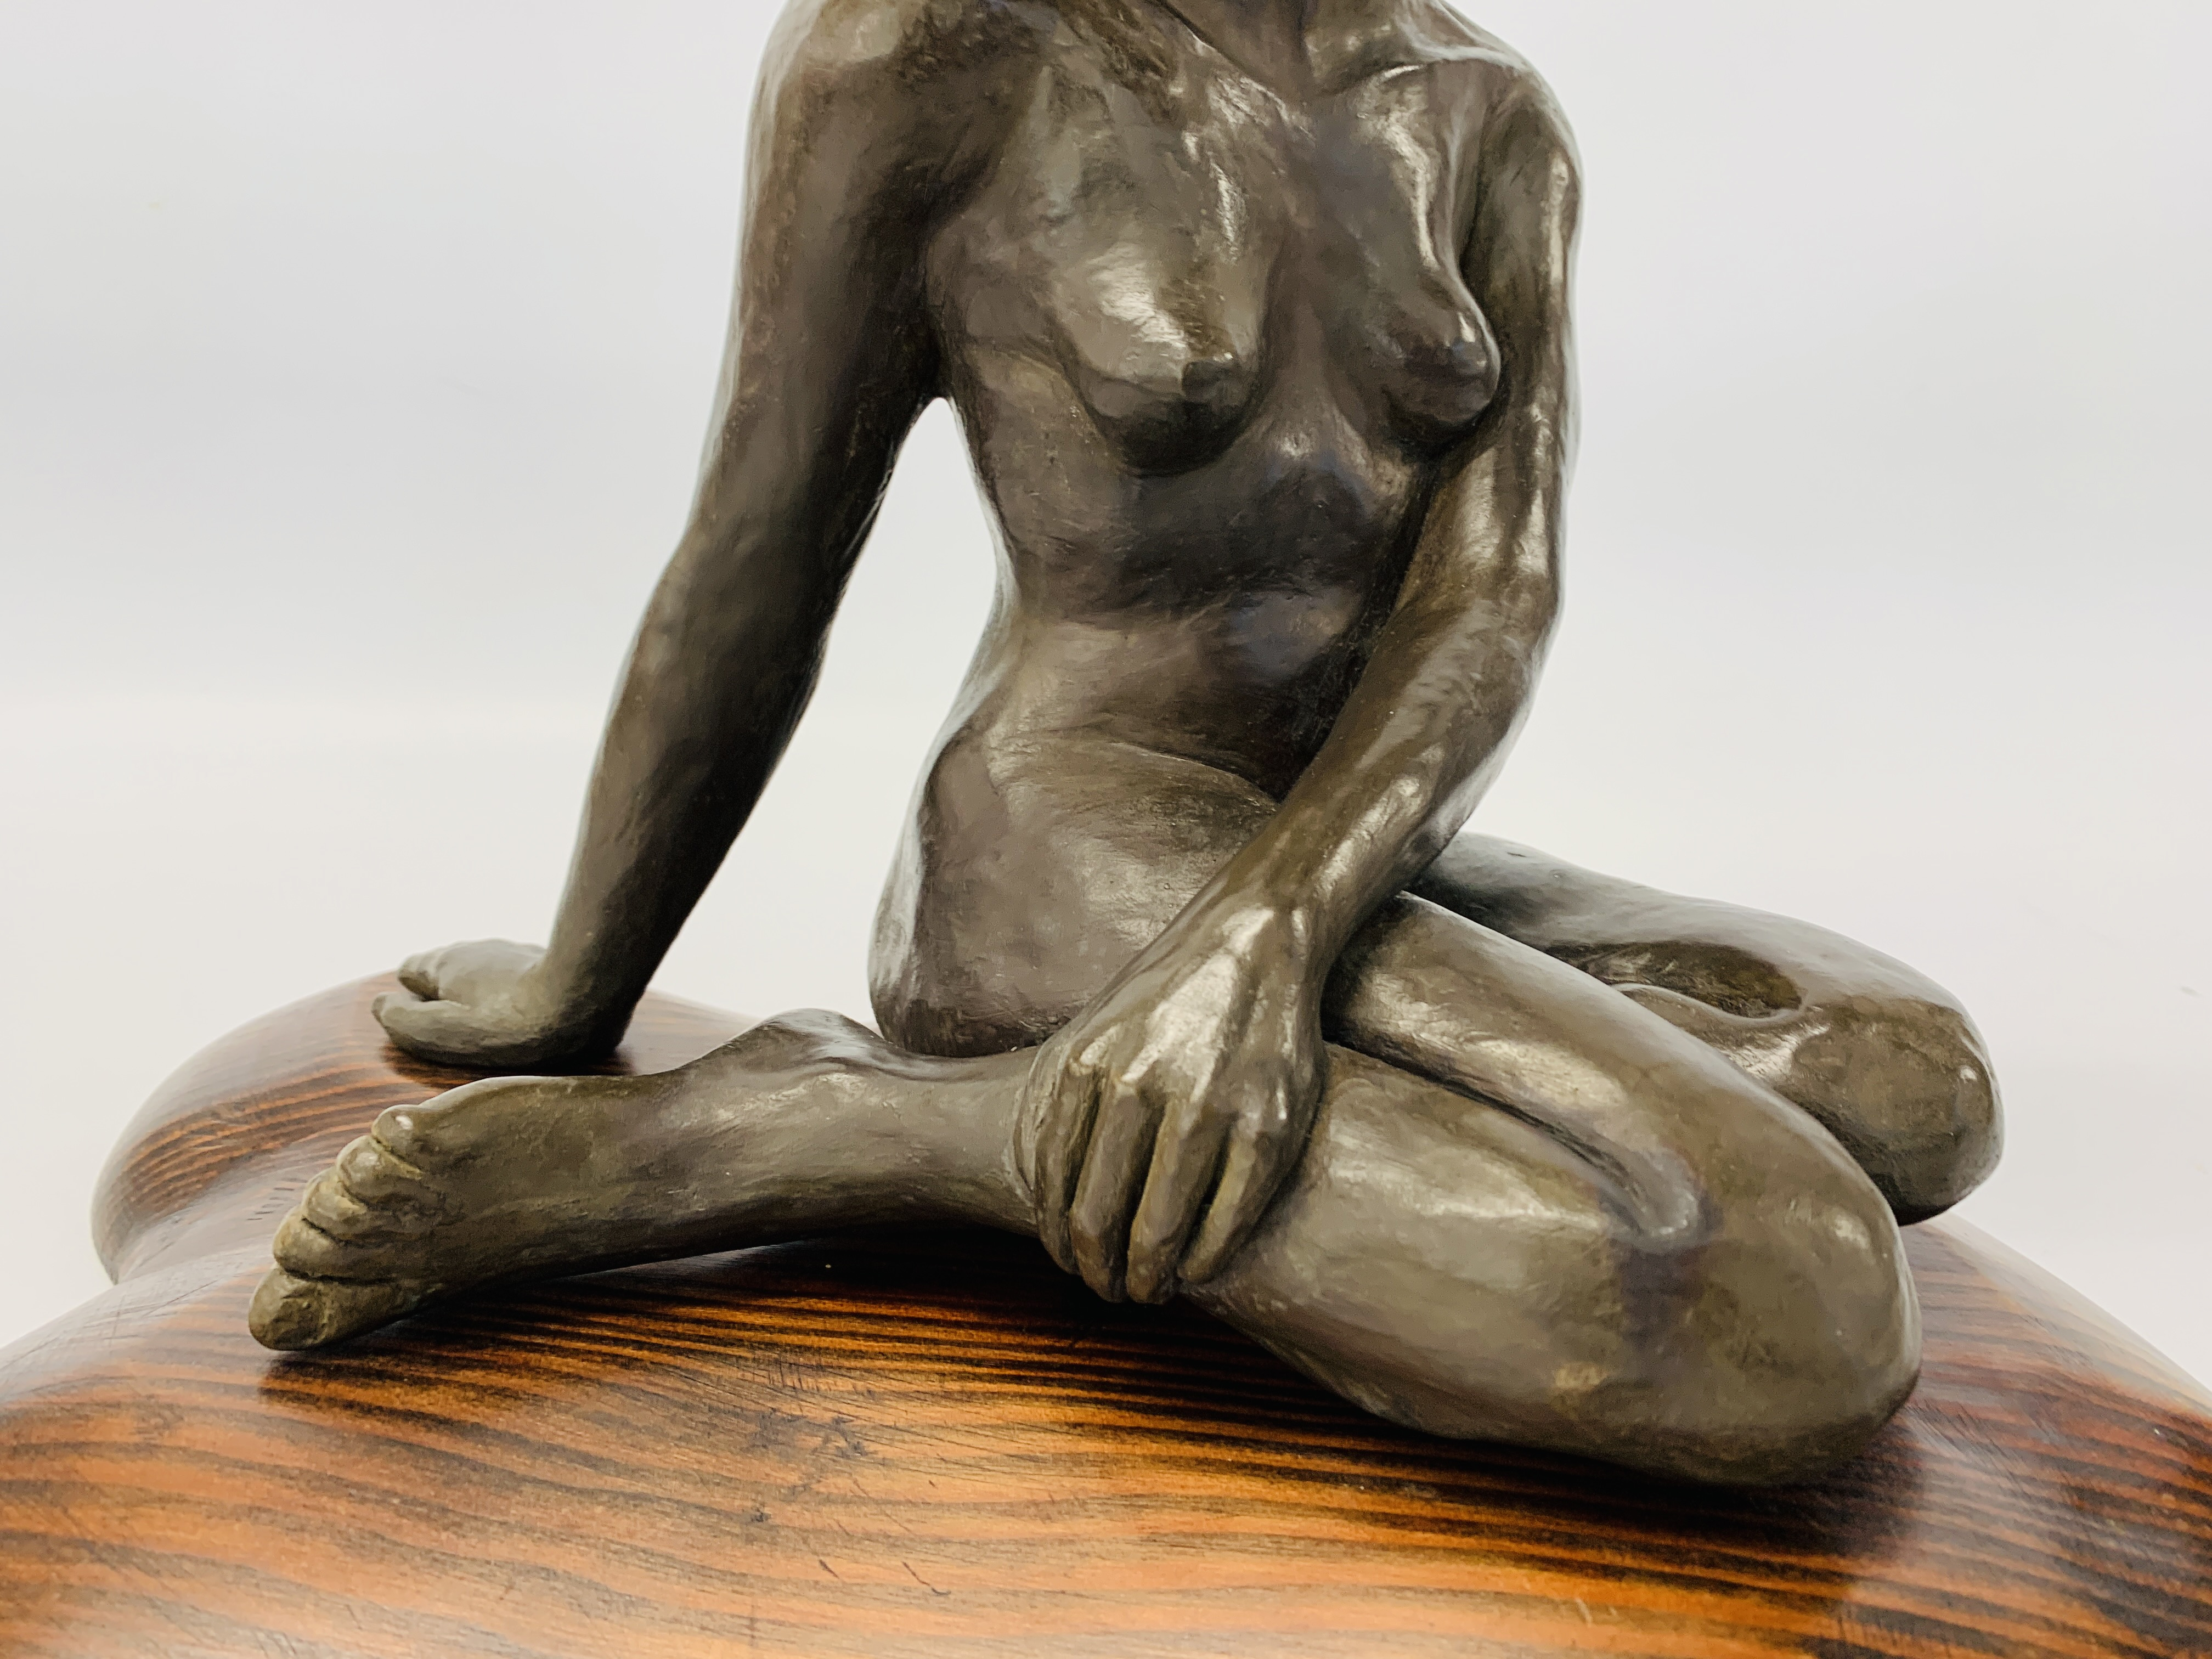 A BRONZED RESIN SCULPTURE OF A SEATED WOMAN BY SONIA DOBBS ON PINE BASE - HEIGHT 33.5 CM. - Image 3 of 8